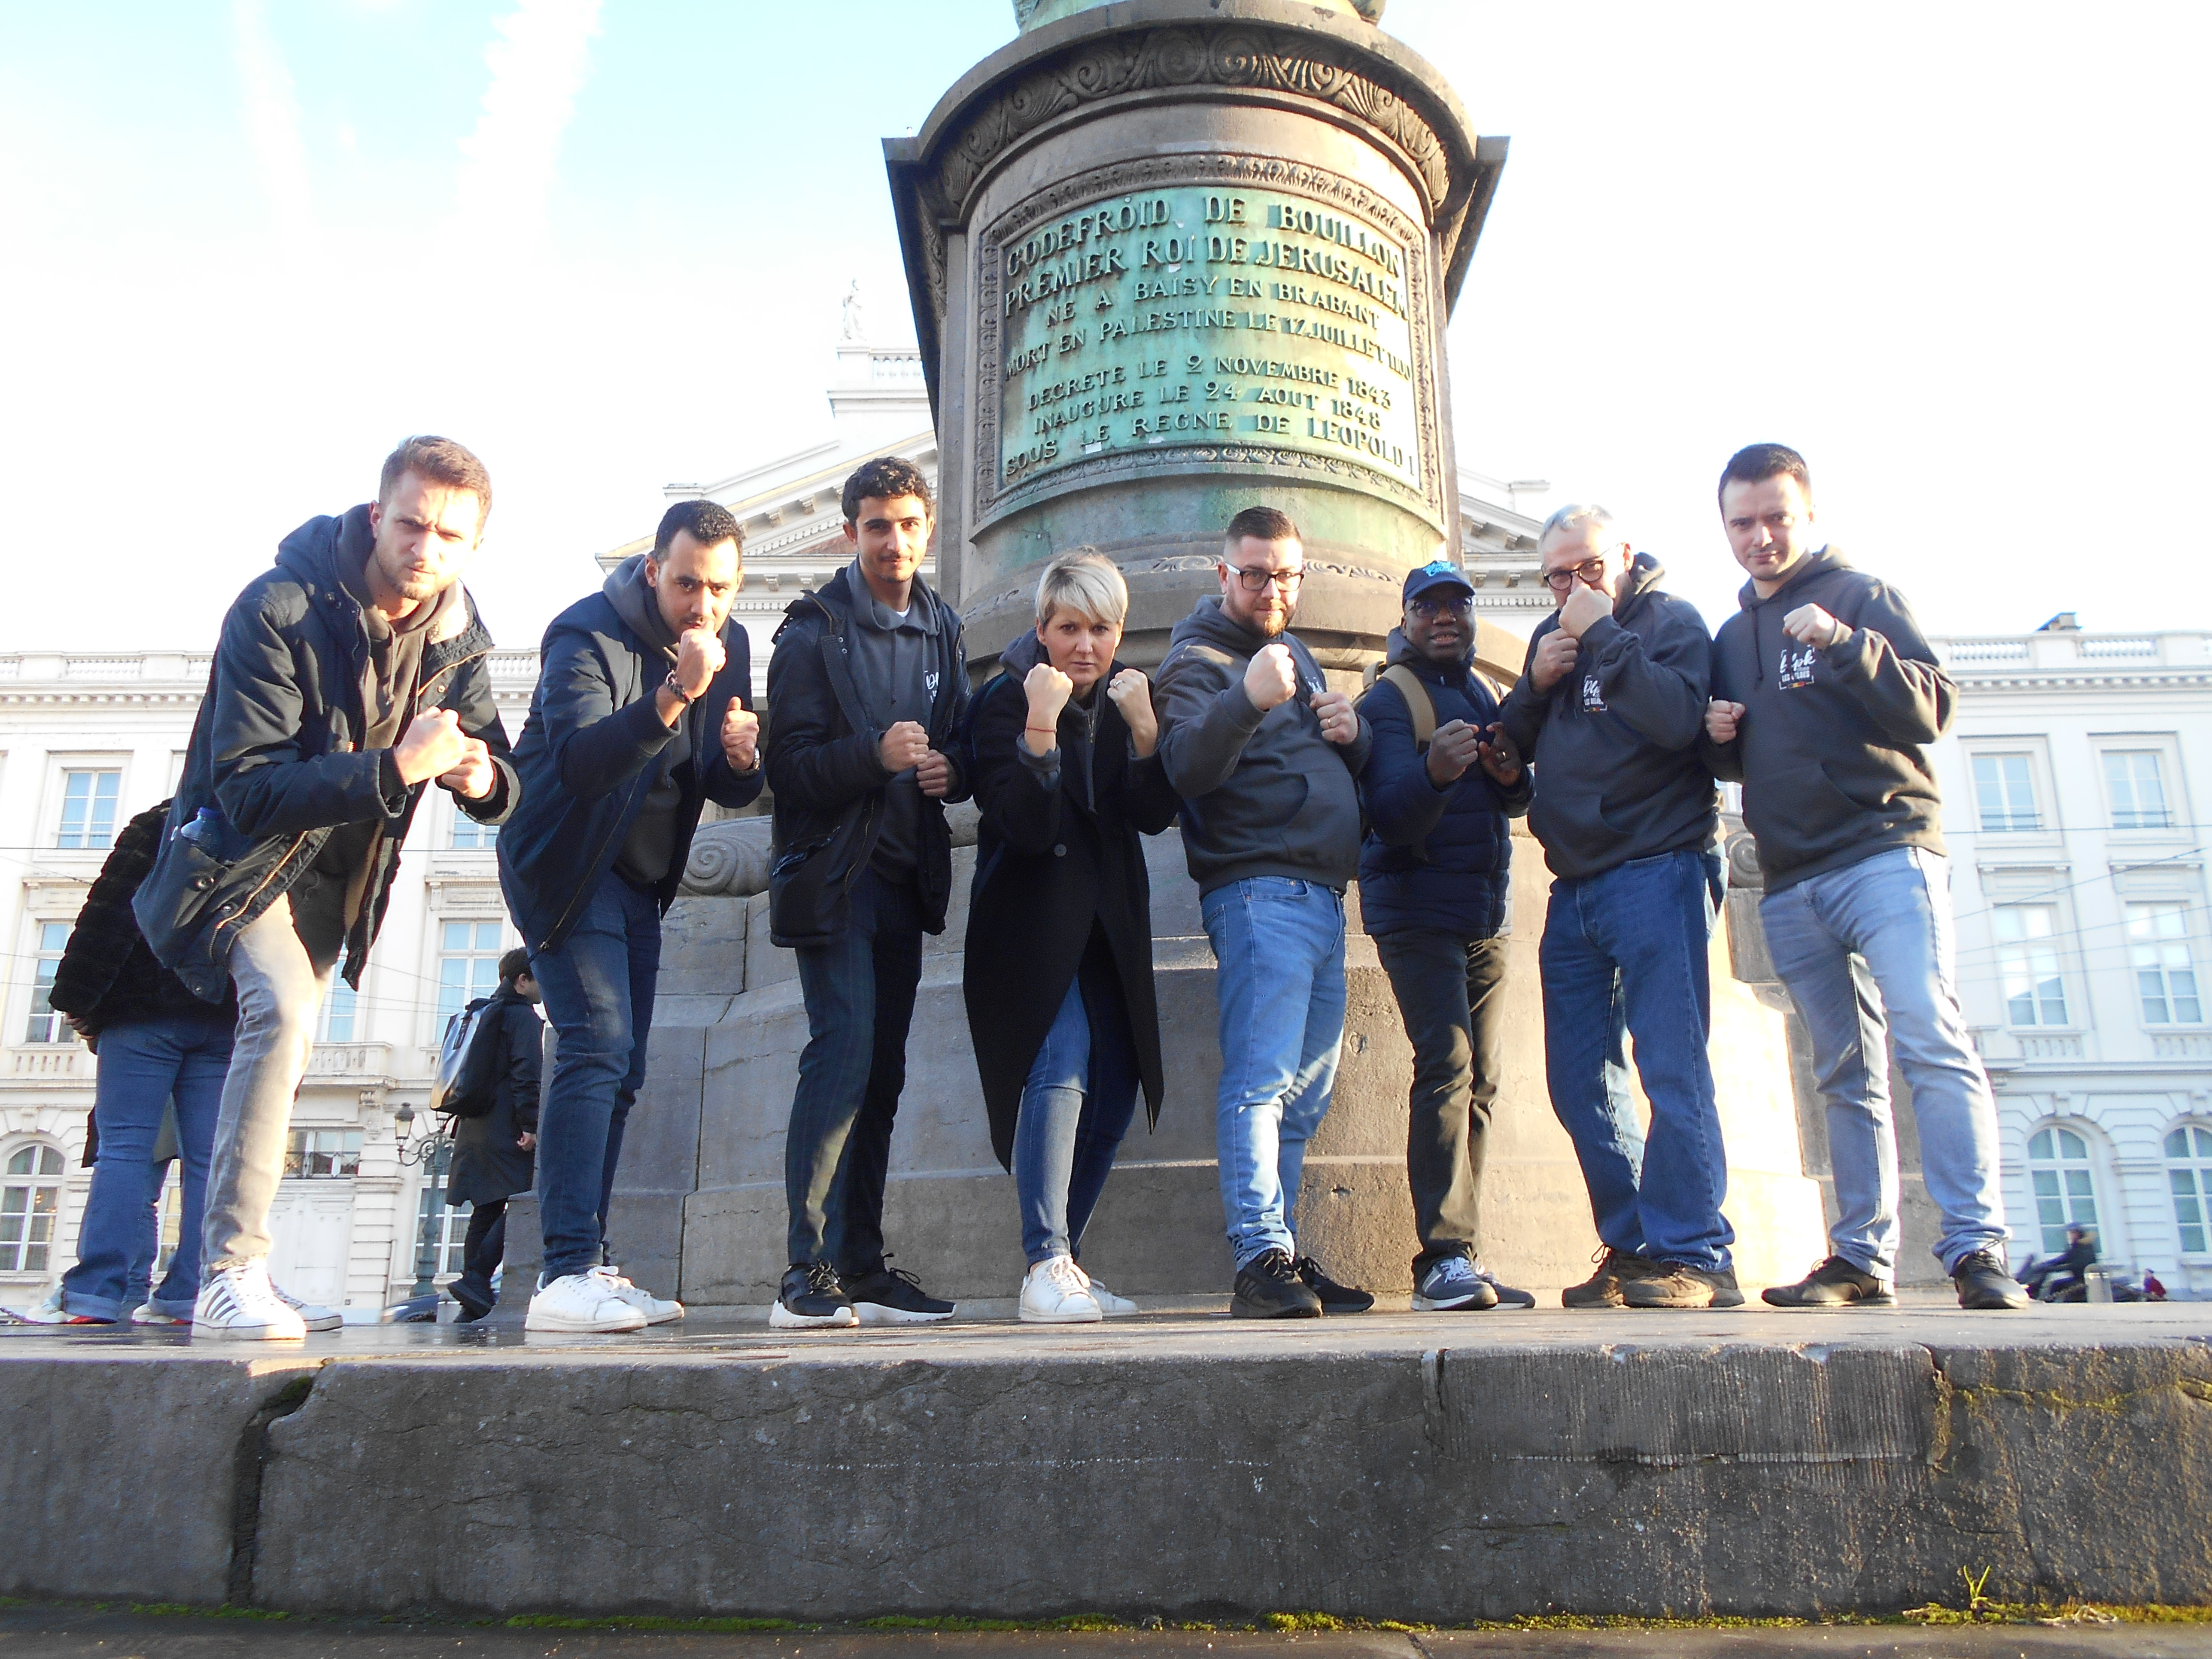 Teambuilding-in-de-stad-1